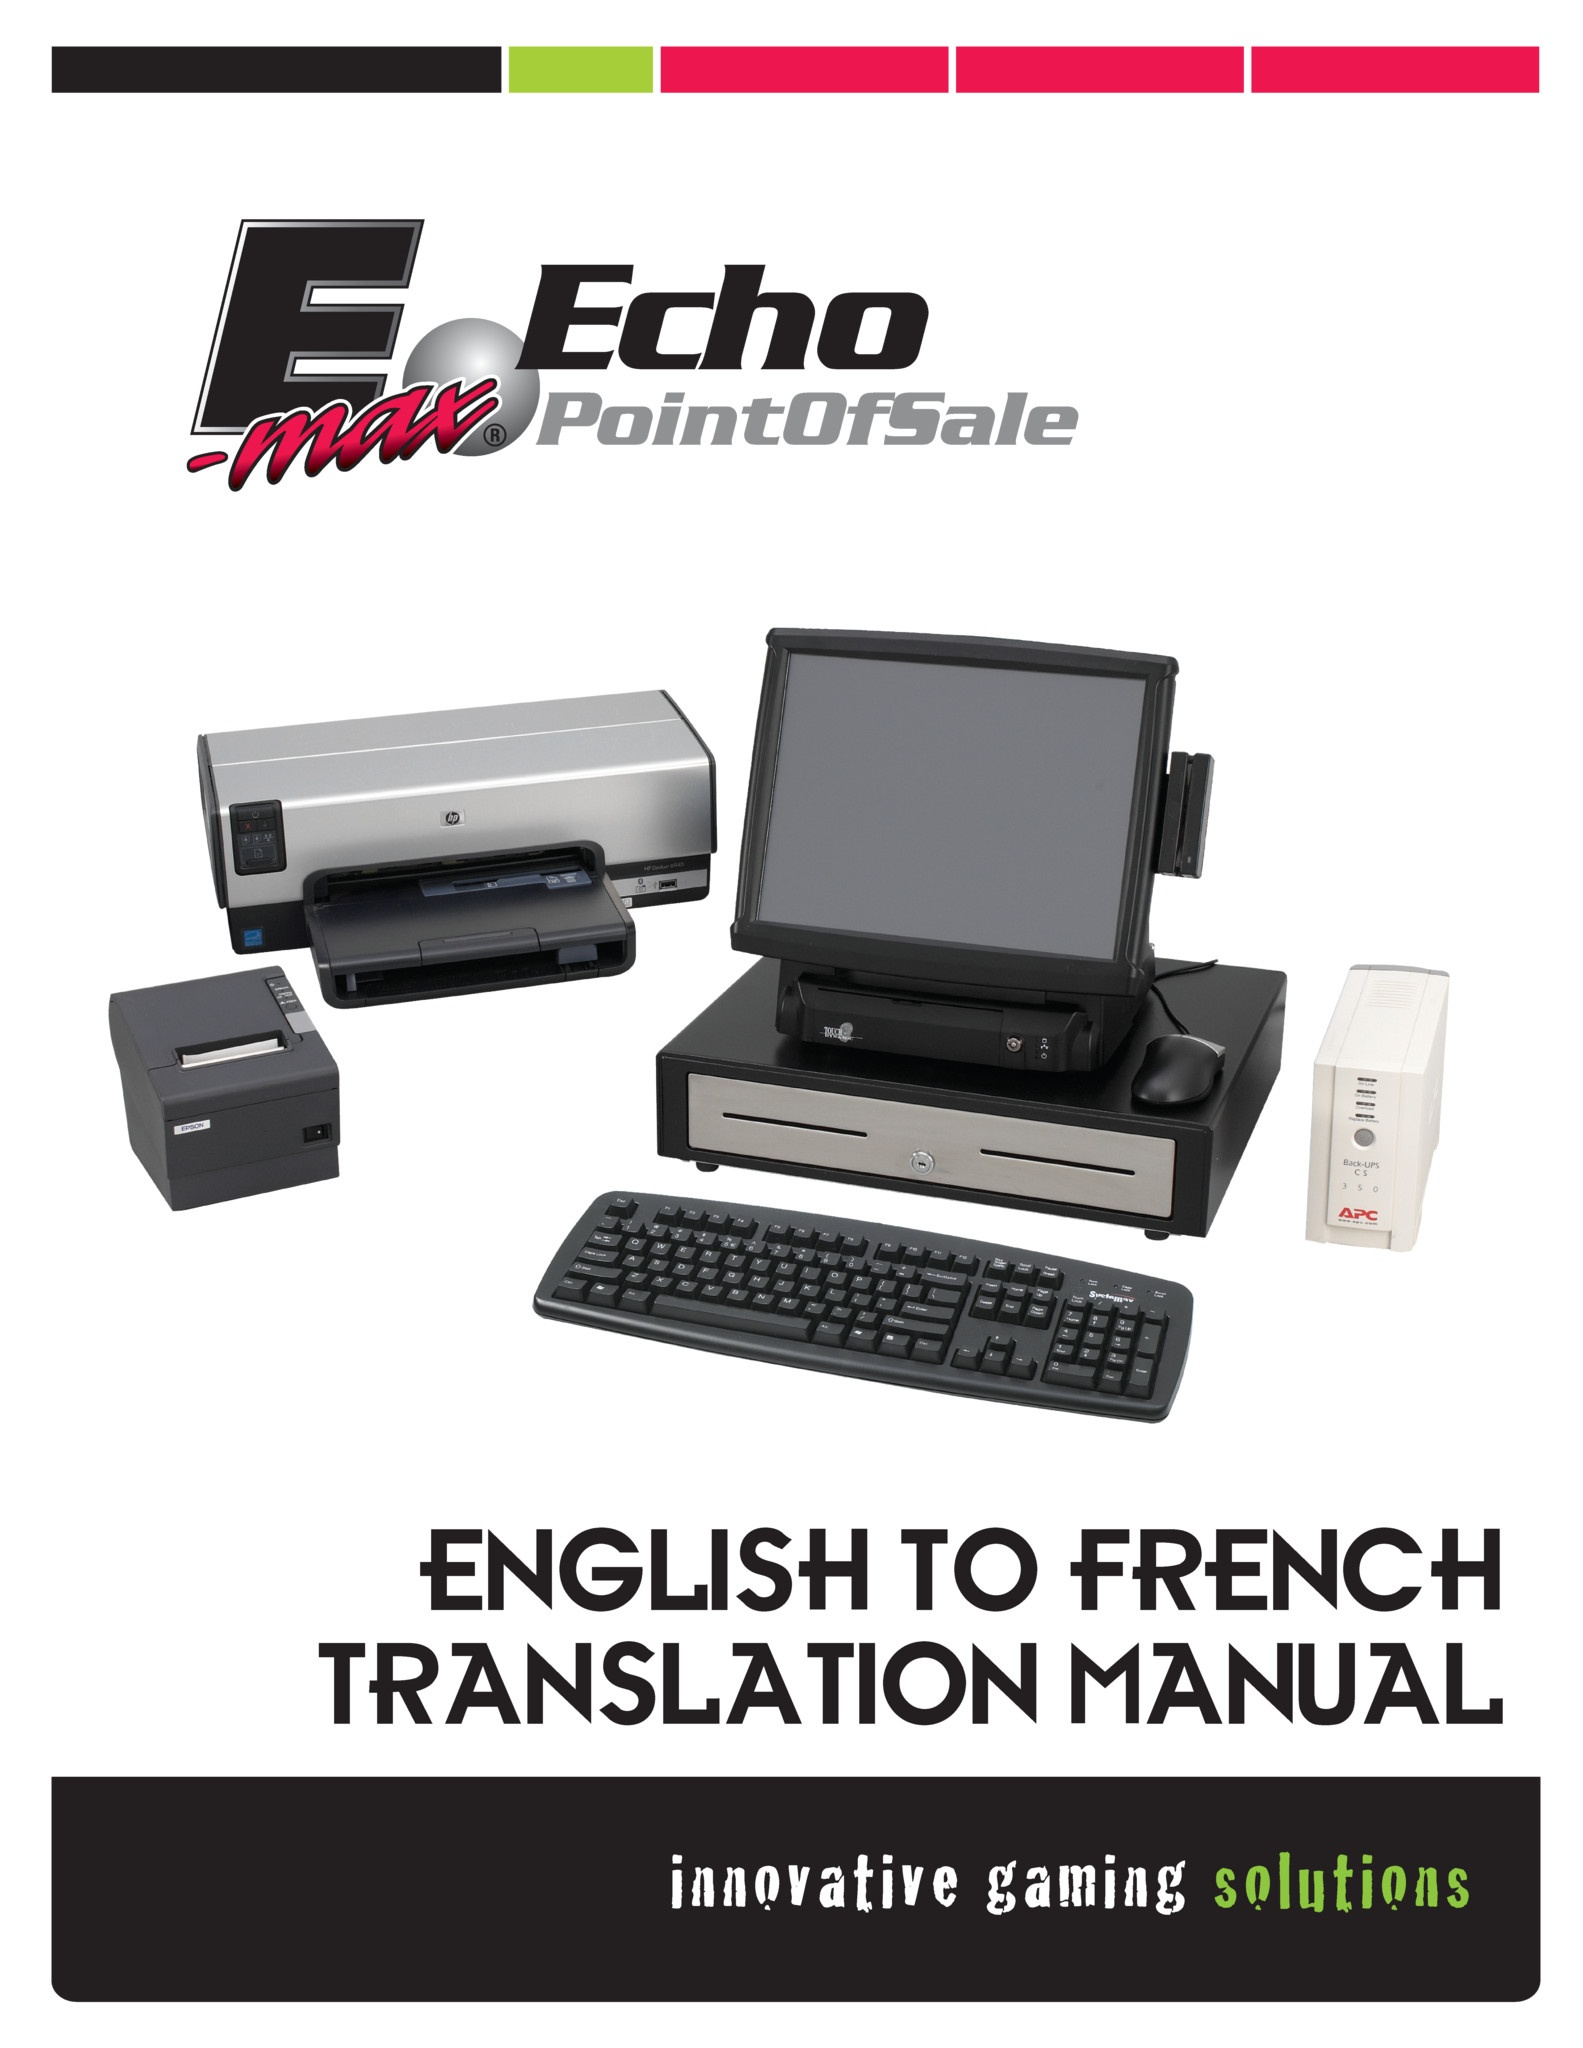 E-max Echo Manual Equipment Manuals